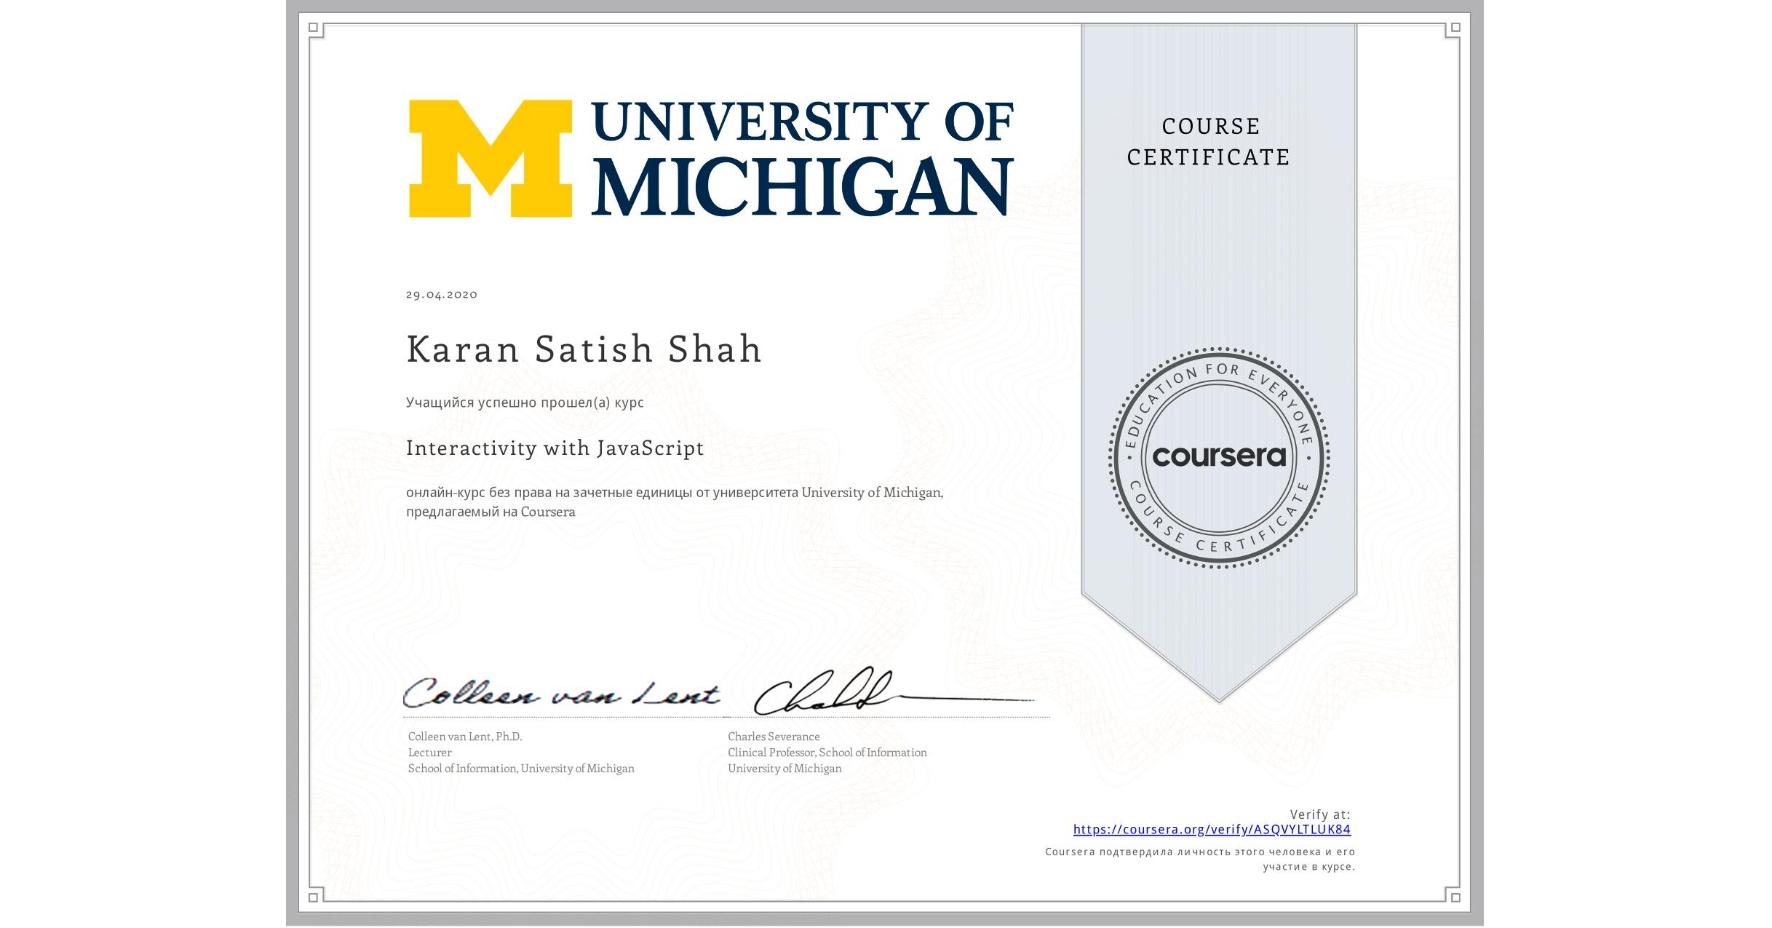 View certificate for Karan Satish Shah, Interactivity with JavaScript, an online non-credit course authorized by University of Michigan and offered through Coursera